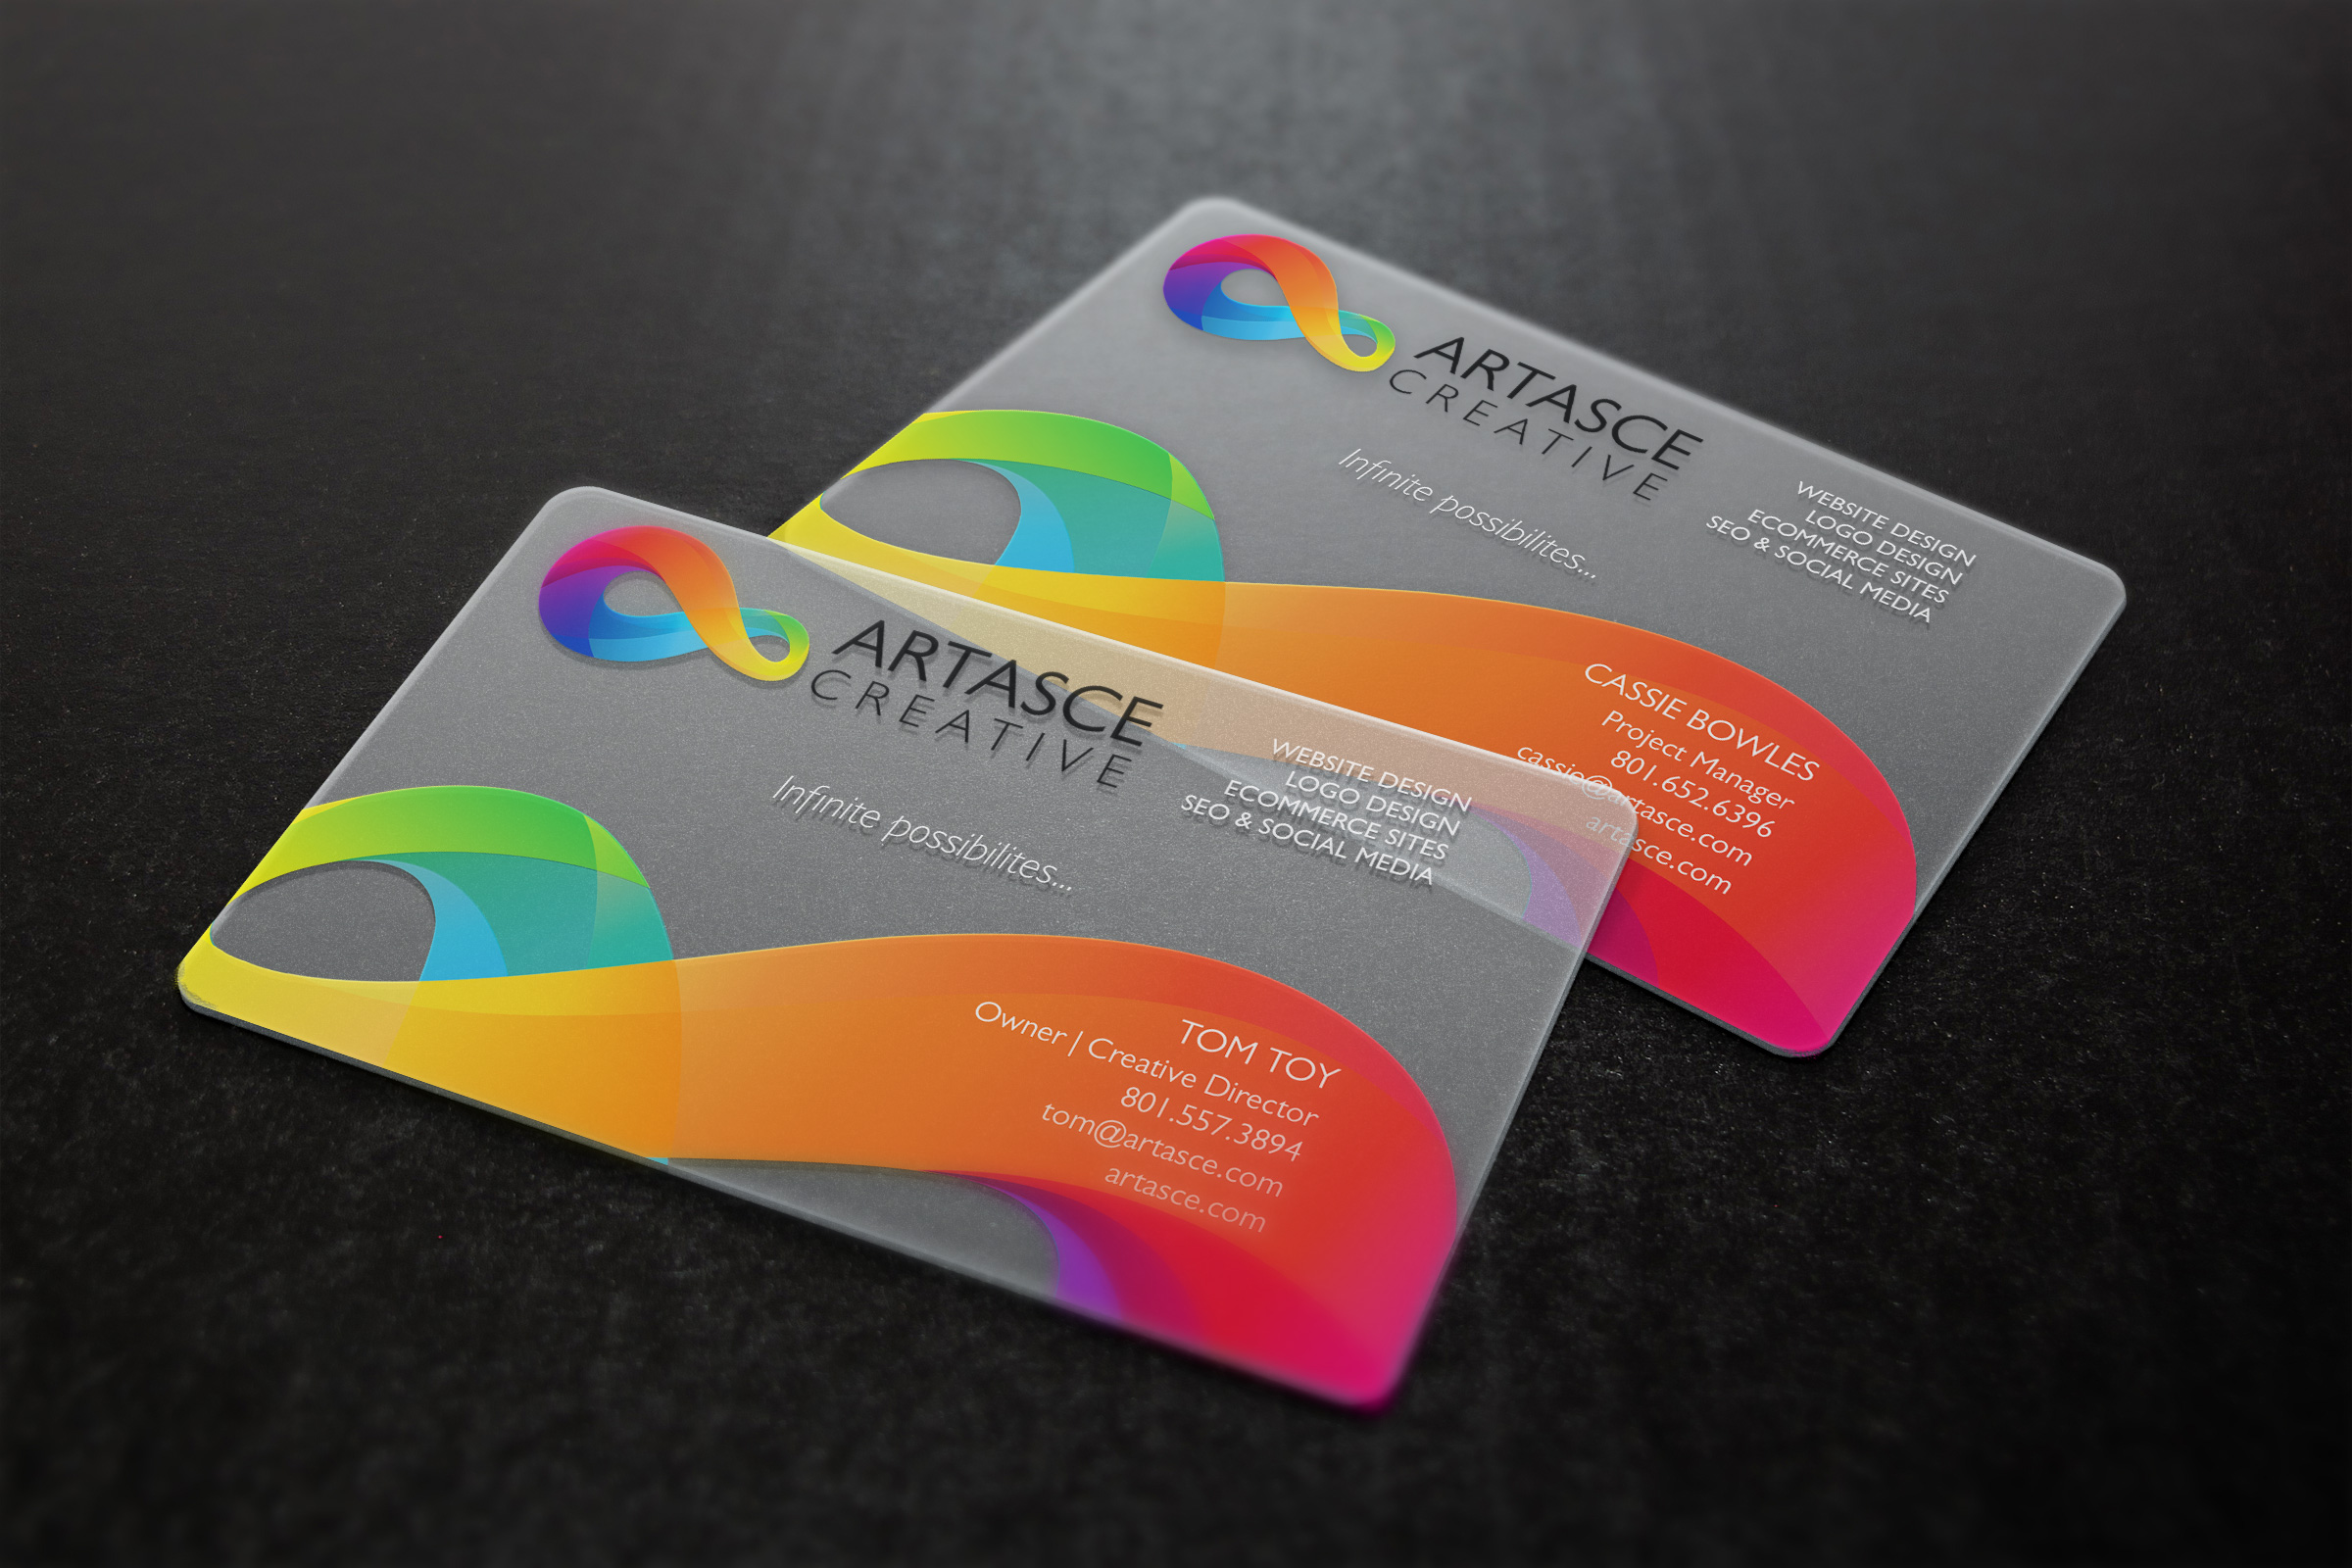 Business card design artasce creative business card design reheart Images